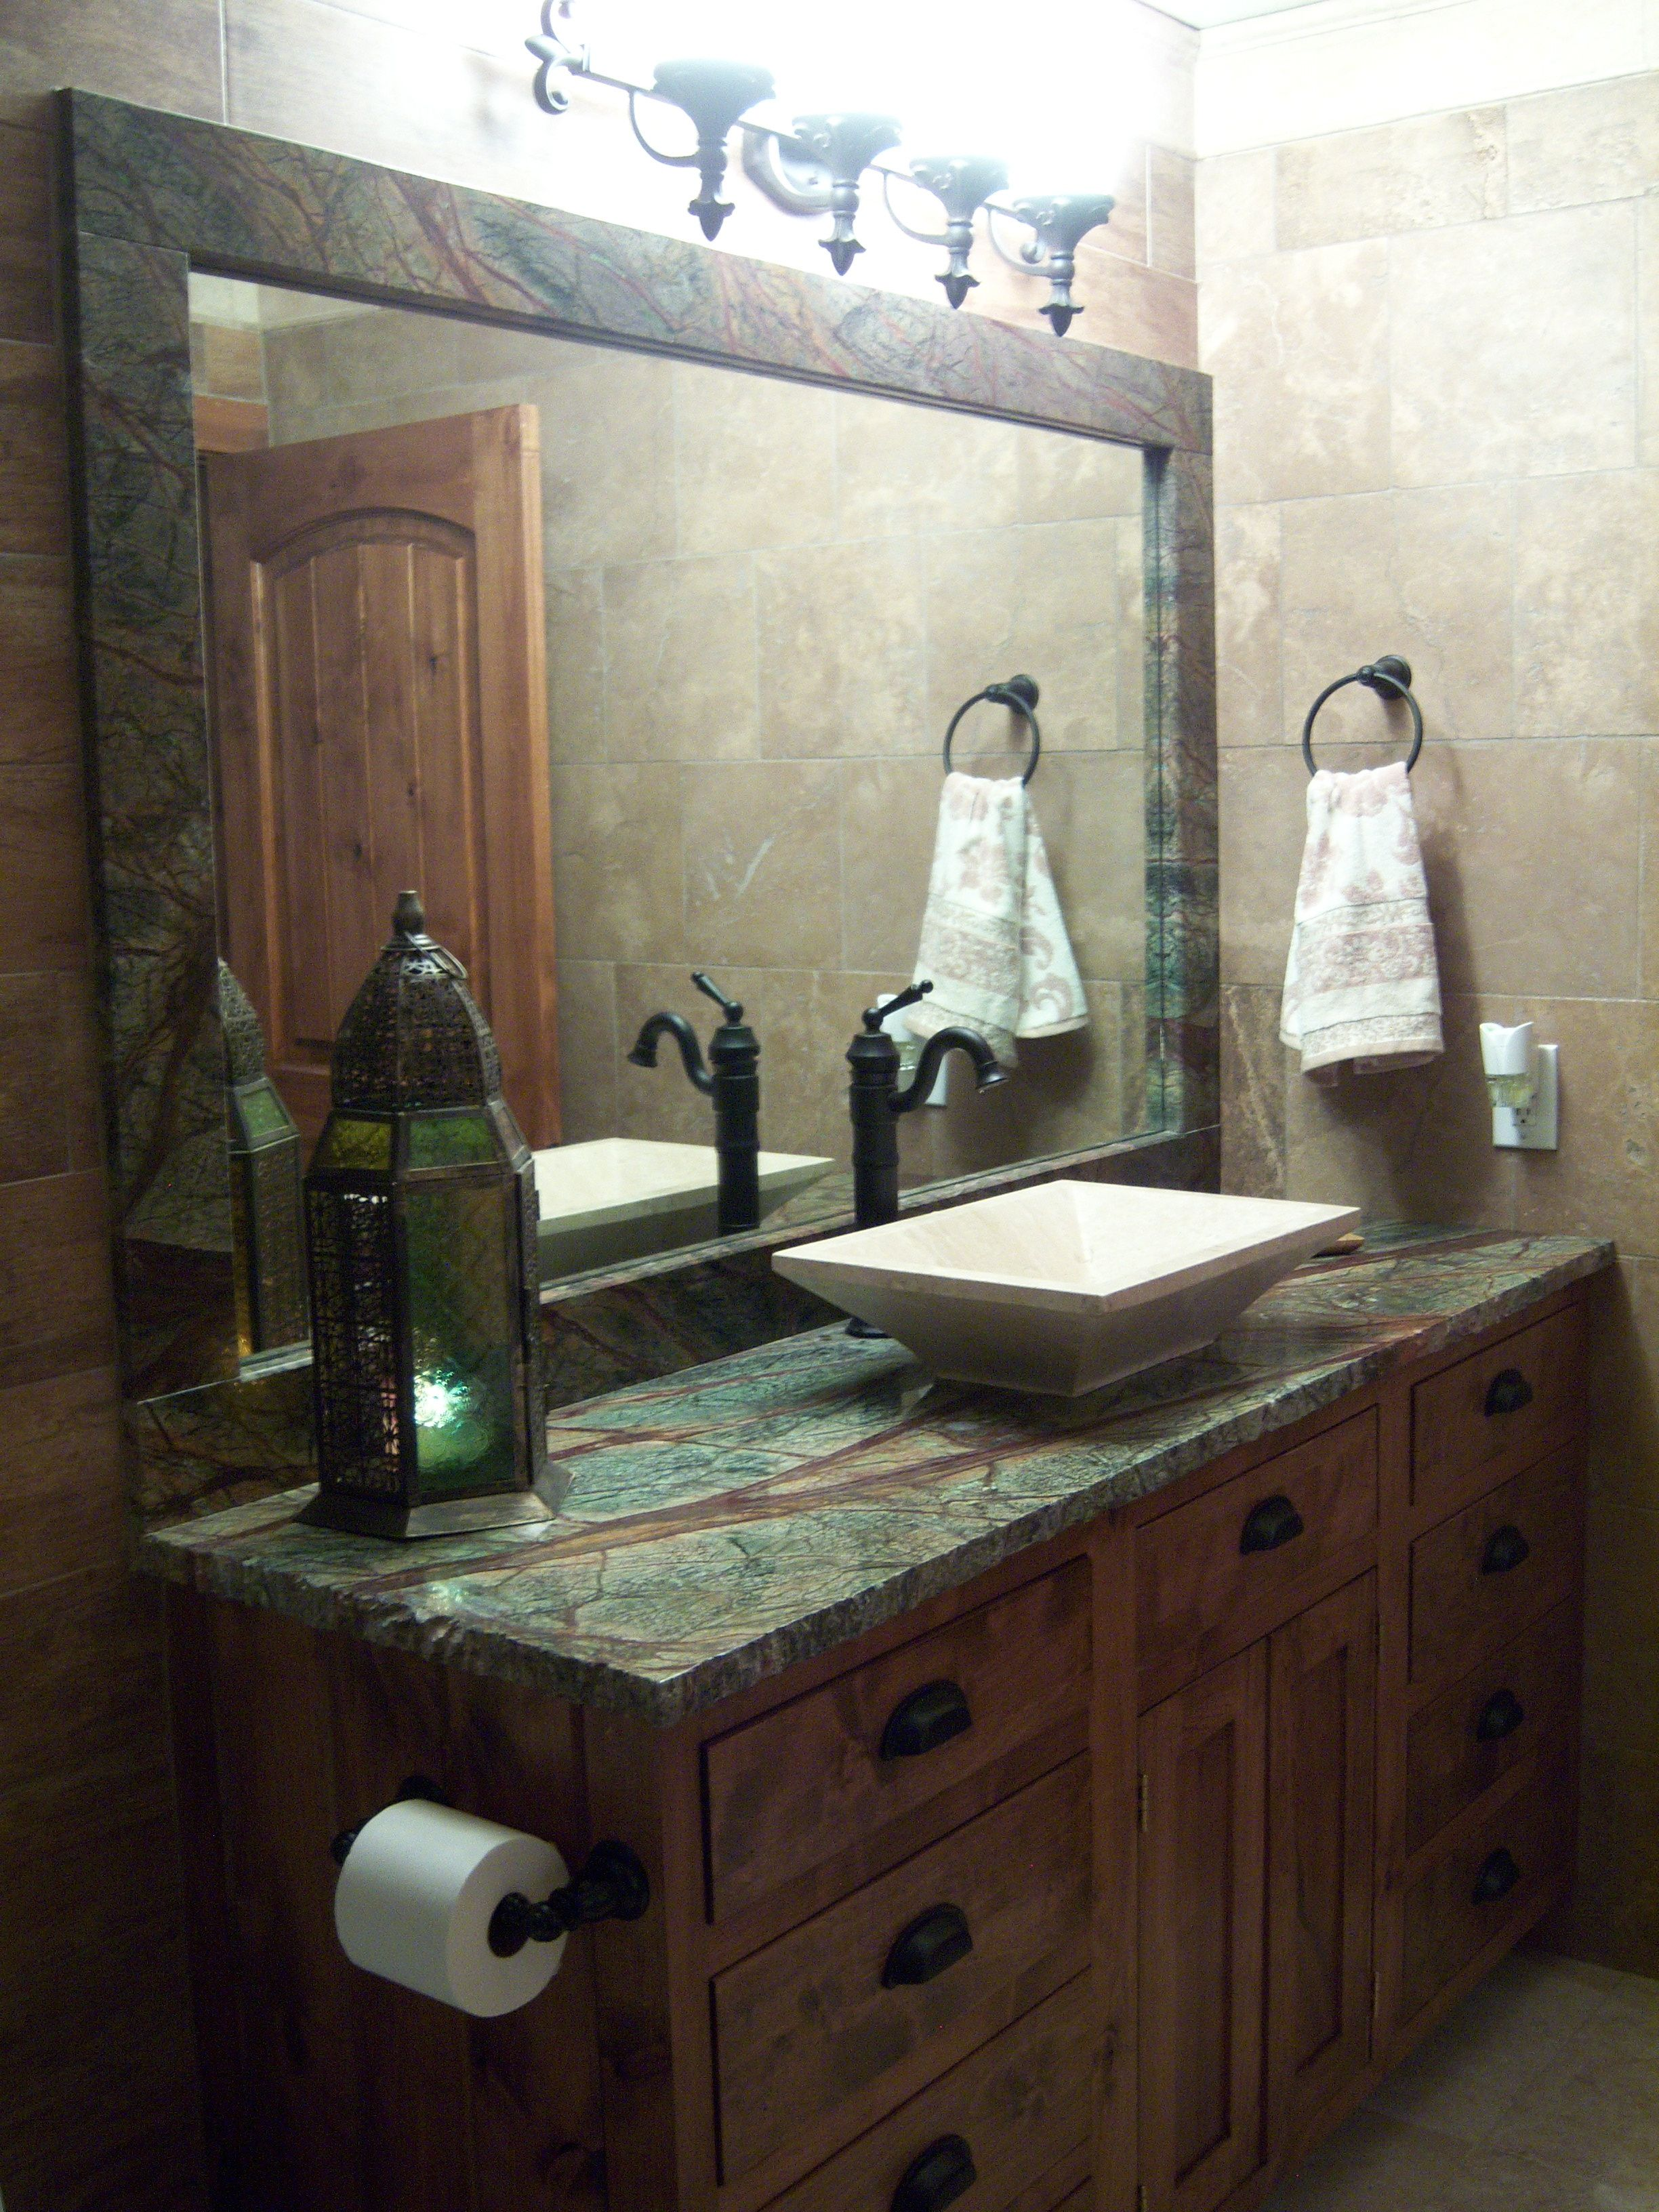 Bathroom Design With Rain Forest Green Granite Countertops And Wood  Cabinets.